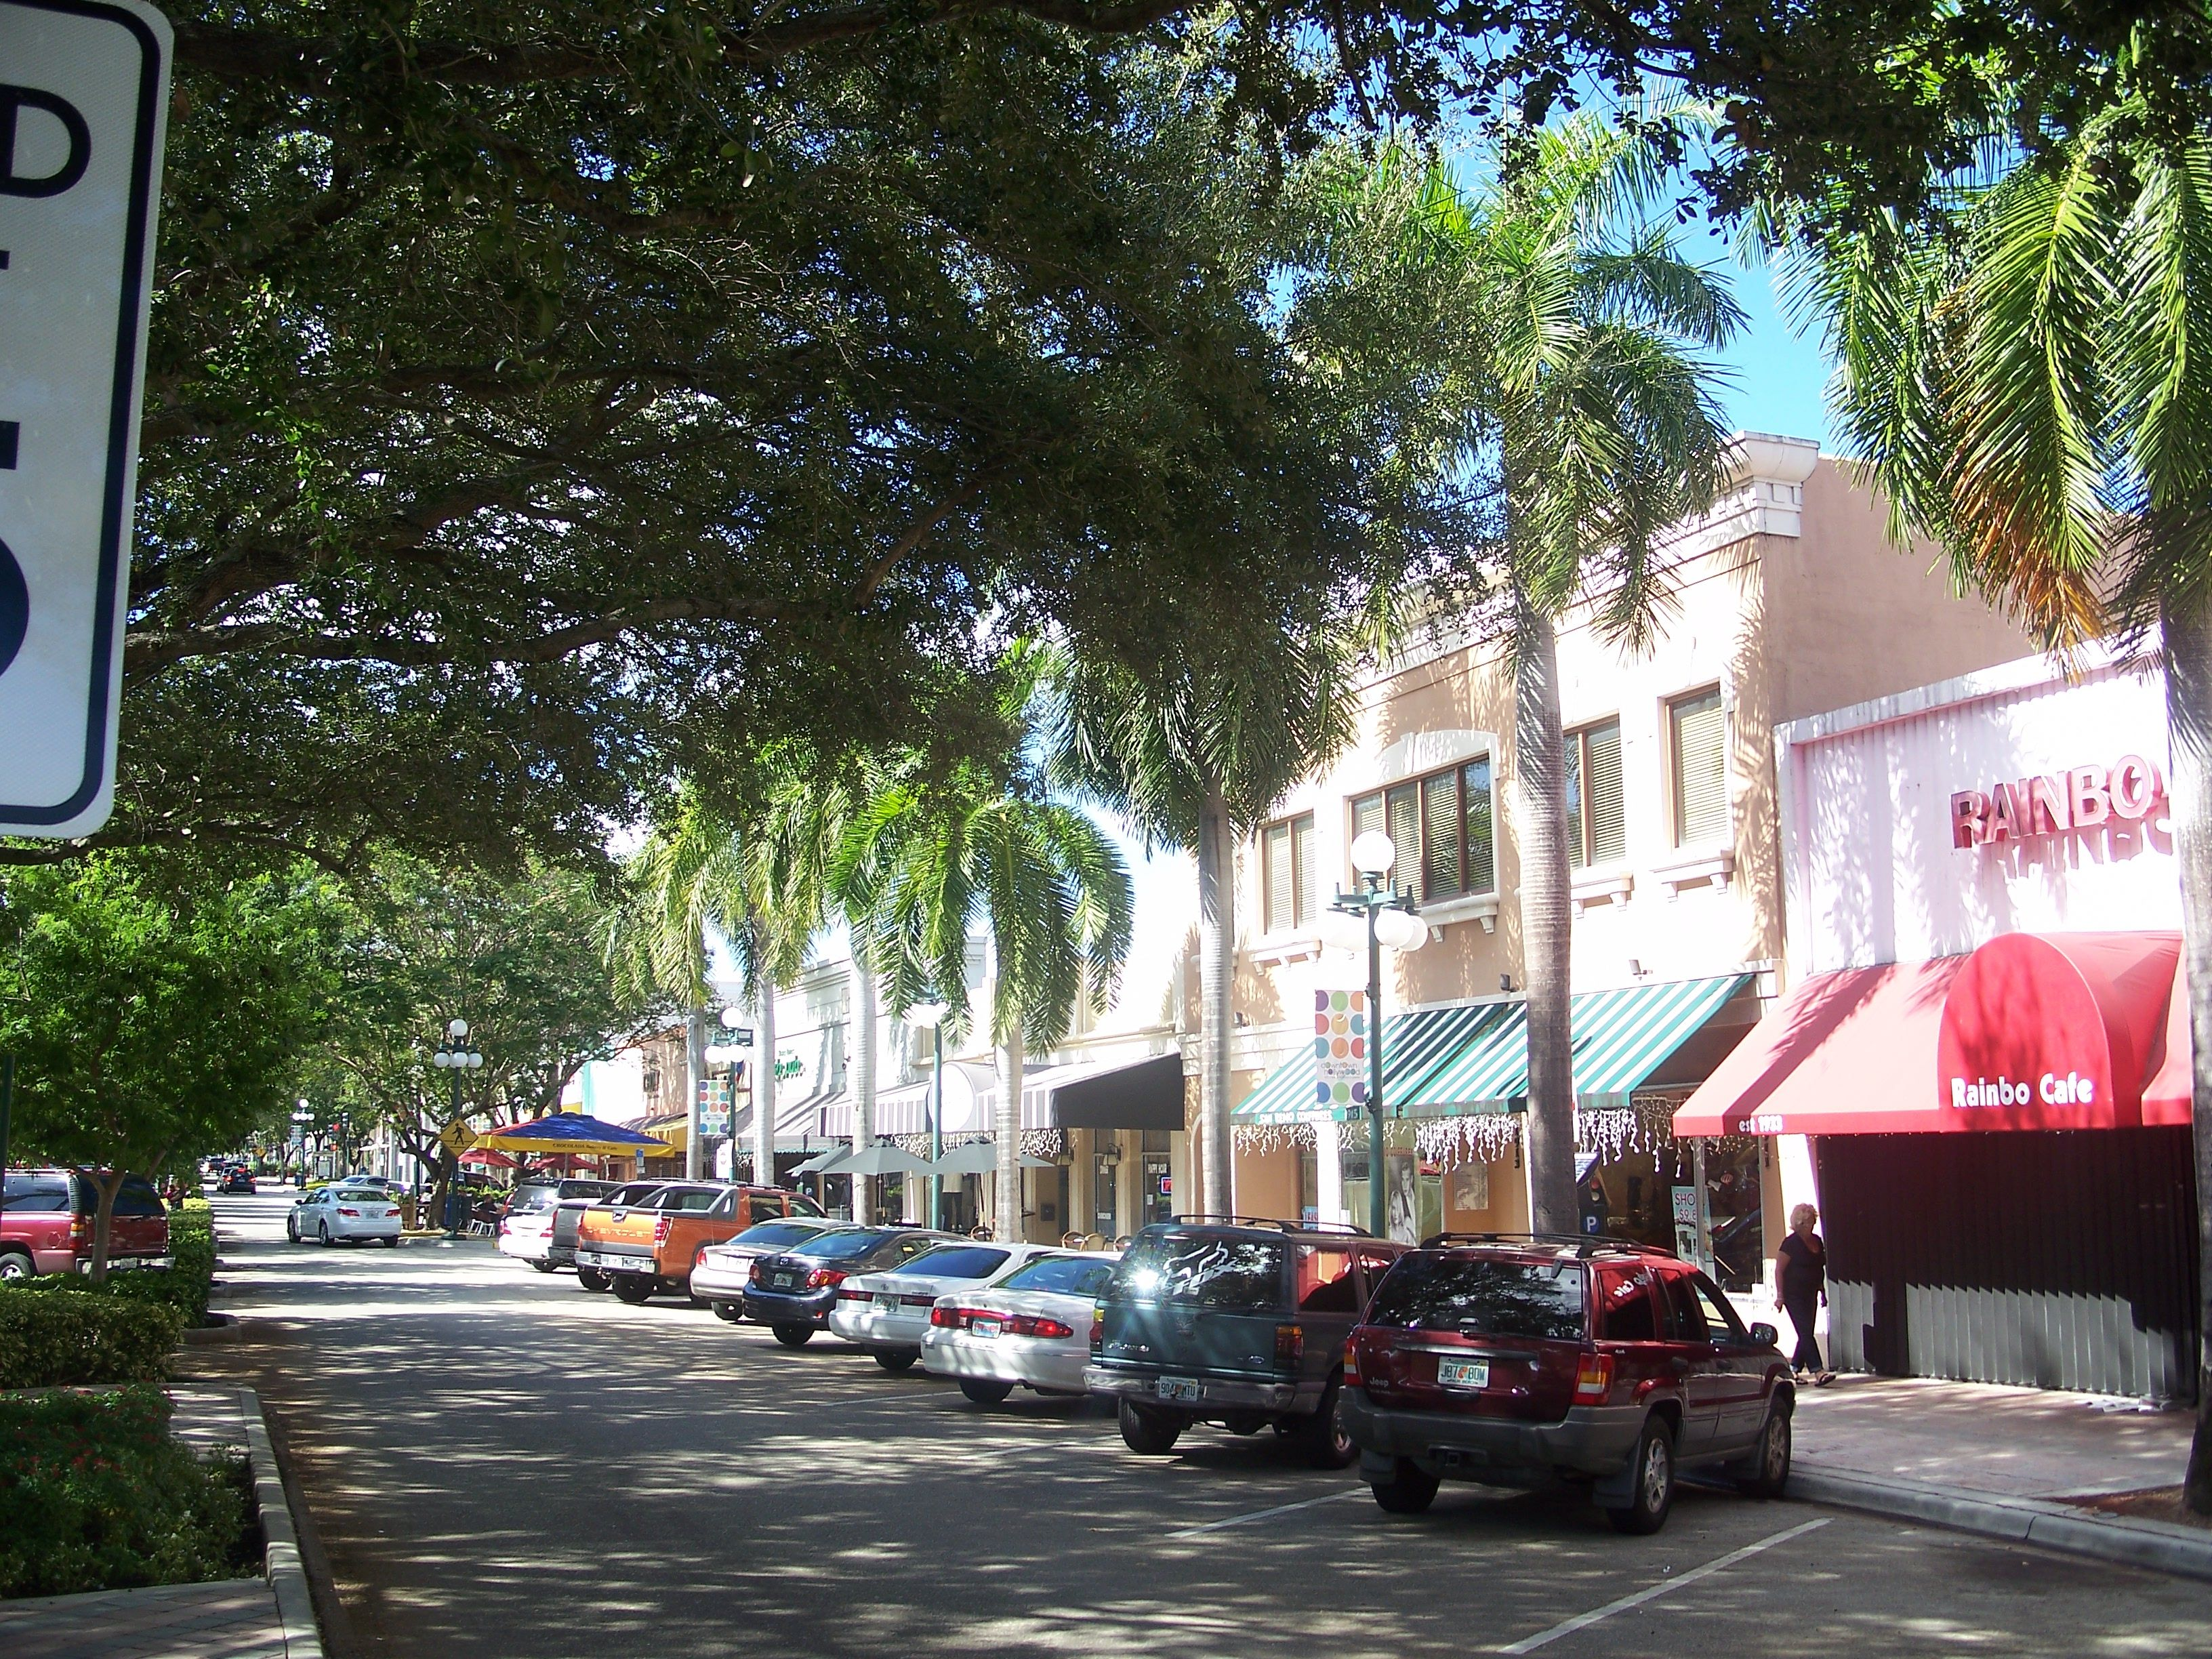 Pineapple Place Apartments In Pompano Beach Small Well Kept Property Just Across A1a Ocean Boulevard From O Pompano Beach Beach Vacation Rentals Small Hotel